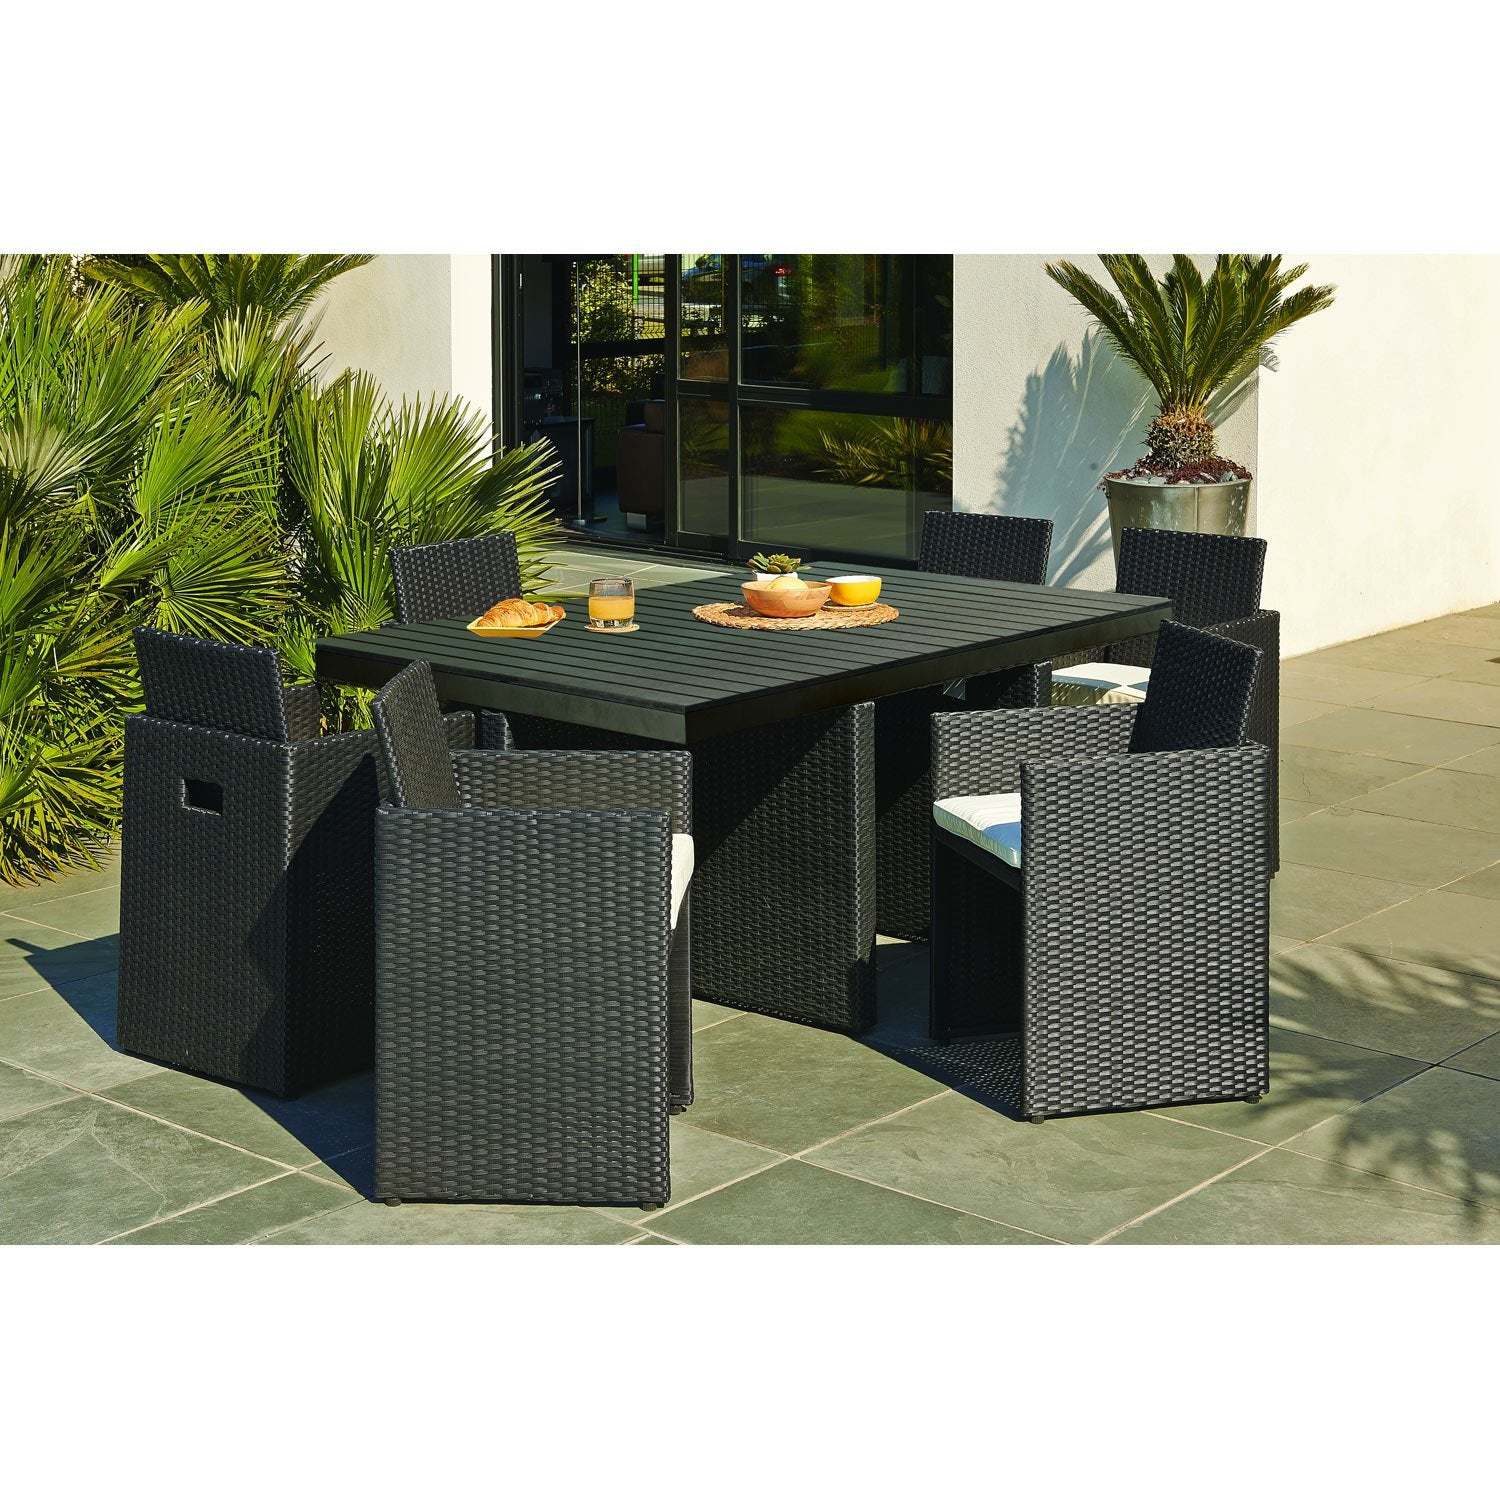 Salon de jardin encastrable r sine tress e noir 1 table for Salon de jardin tresse